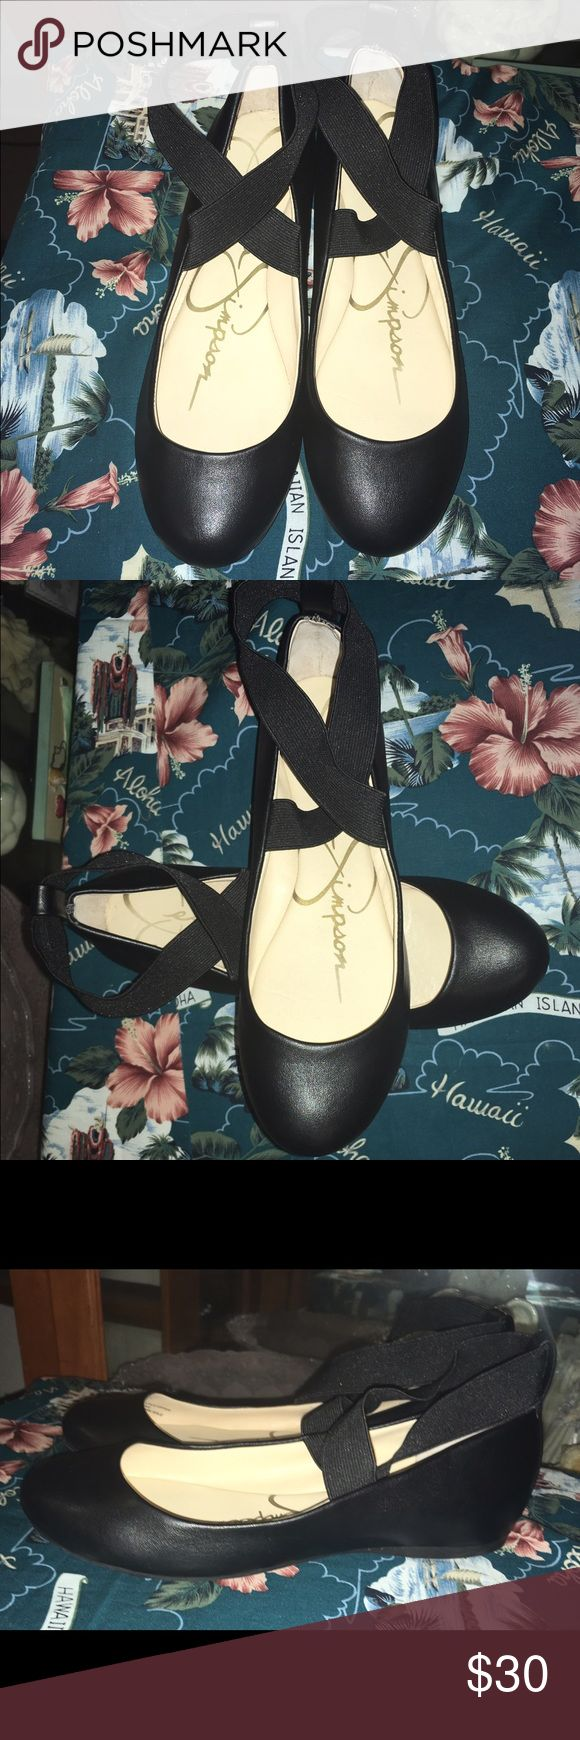 Jessica Simpson Ballet Flats Size 7 Beautiful Jessica Simpson Ballet Flats Size 7. It is in great condition Jessica Simpson Shoes Flats & Loafers